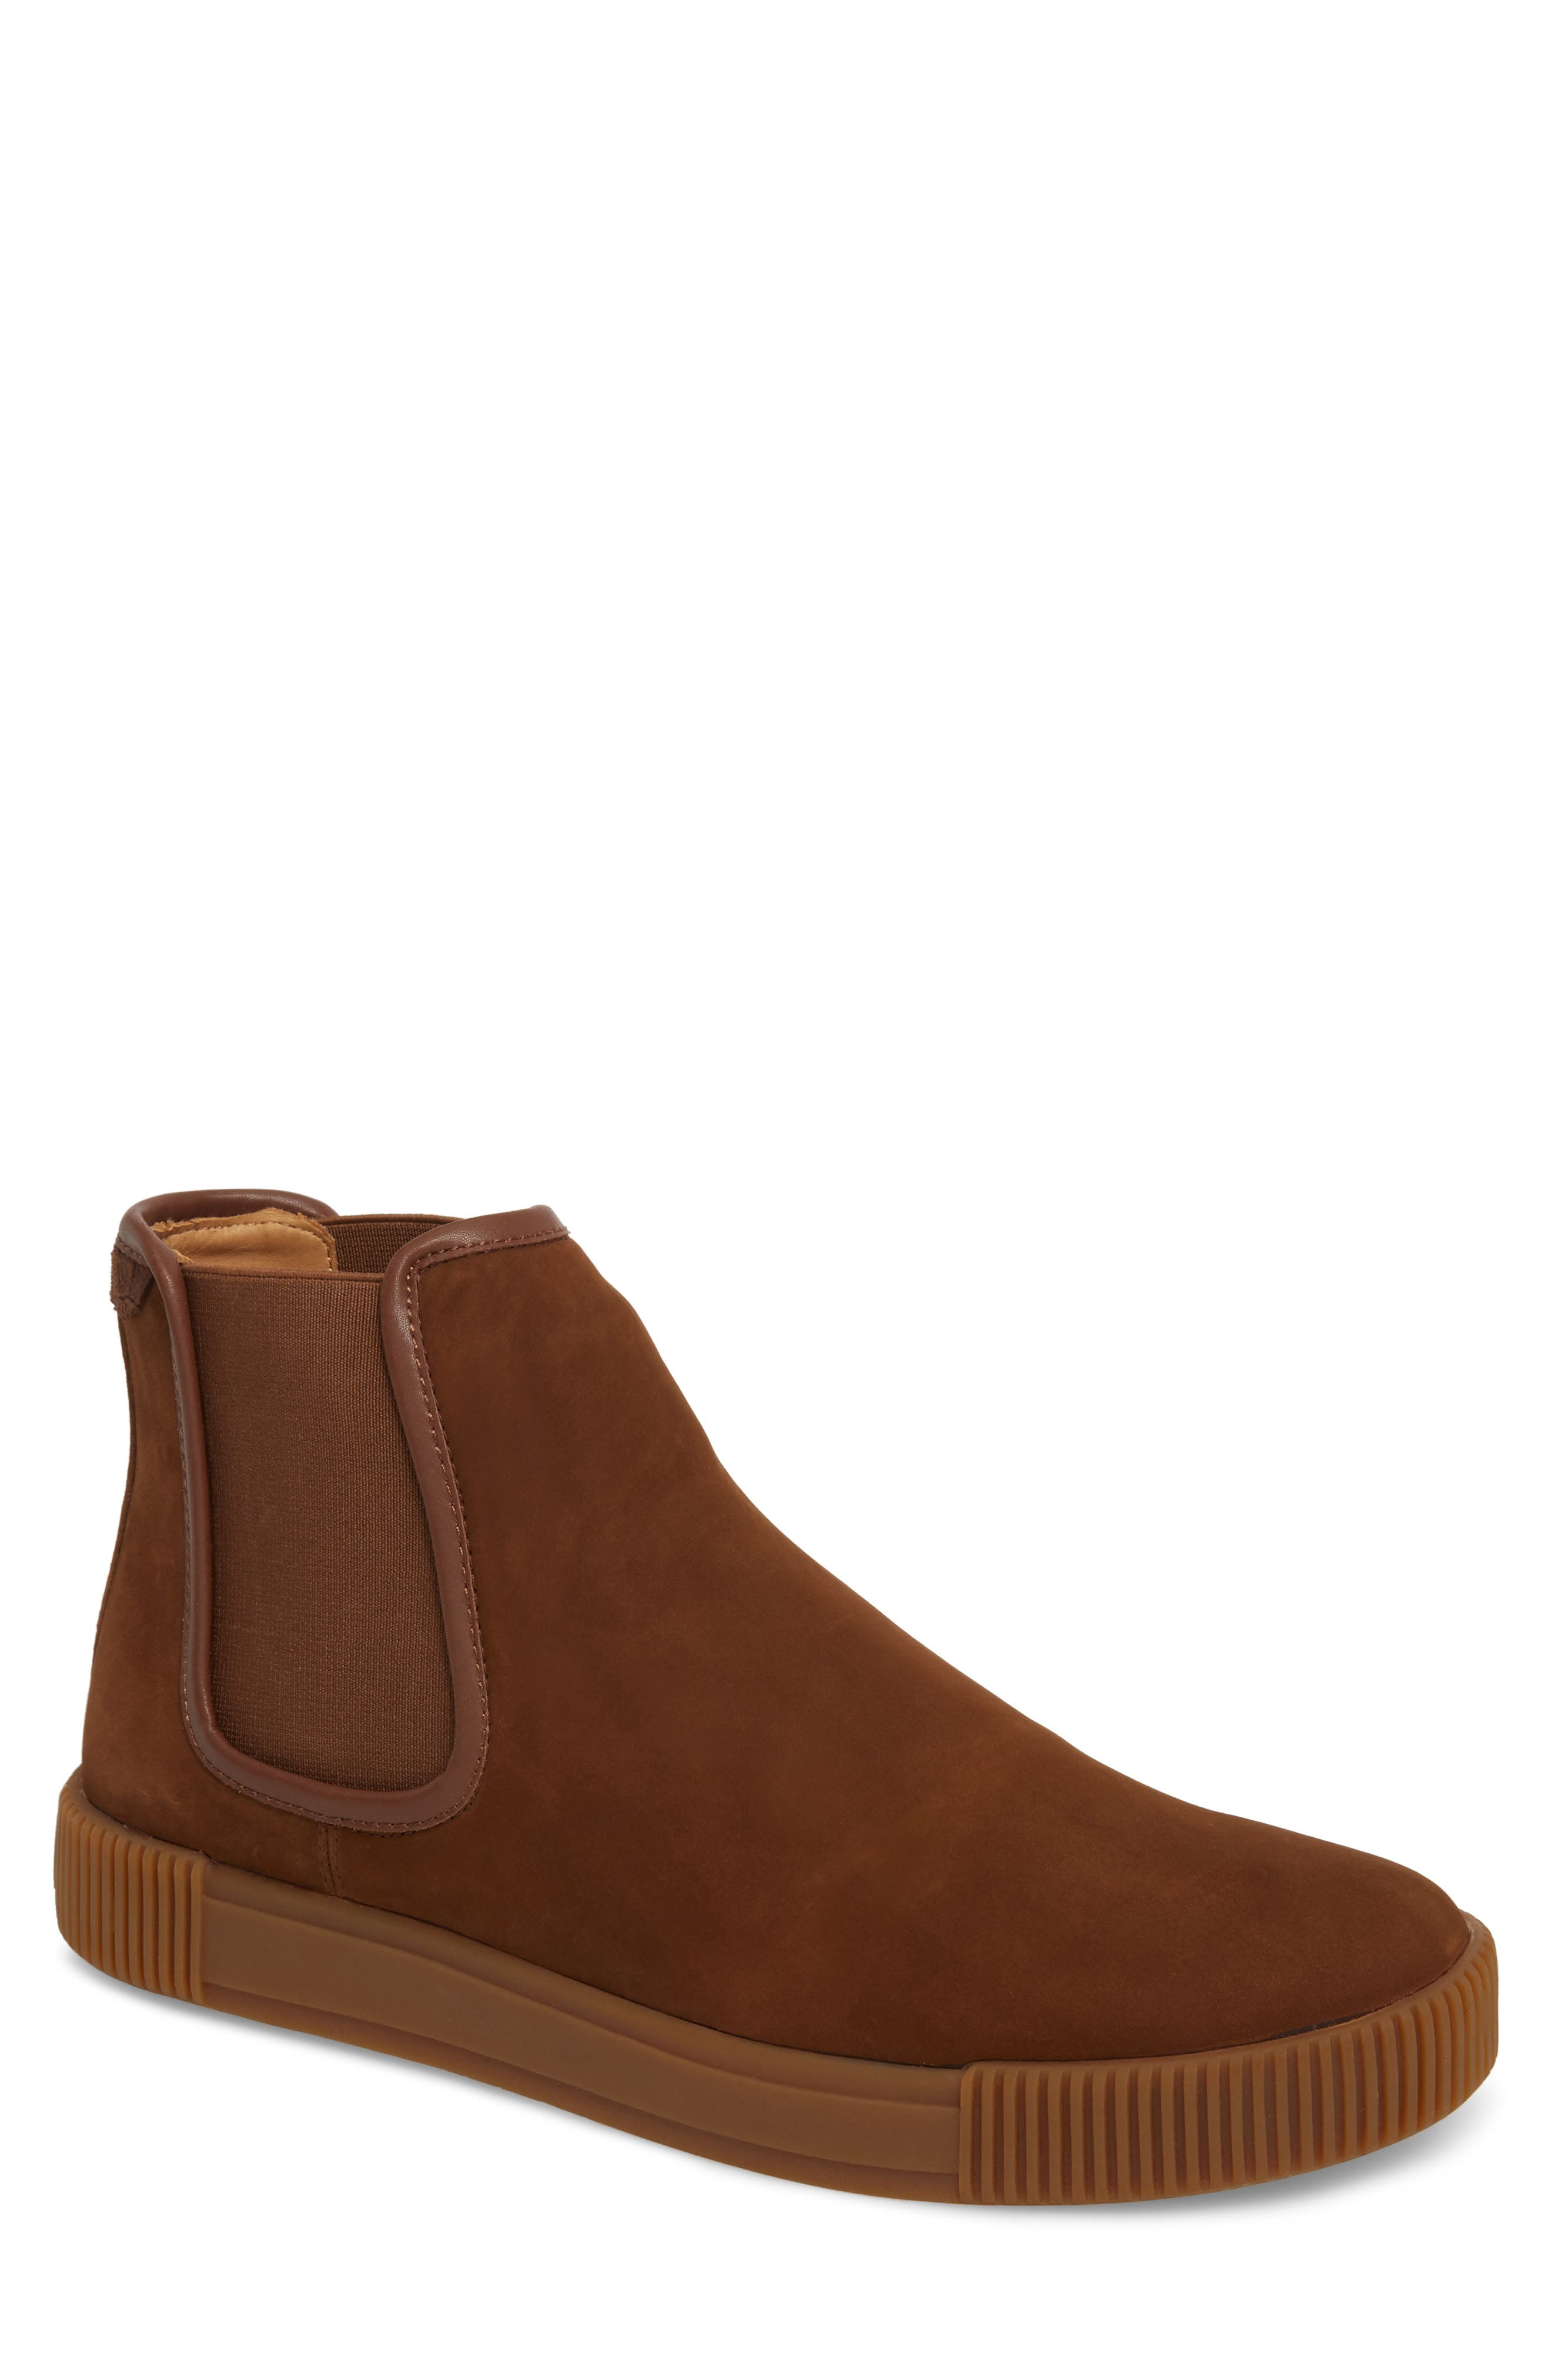 Lyons Chelsea Boot,                             Main thumbnail 1, color,                             CHOCOLATE SUEDE